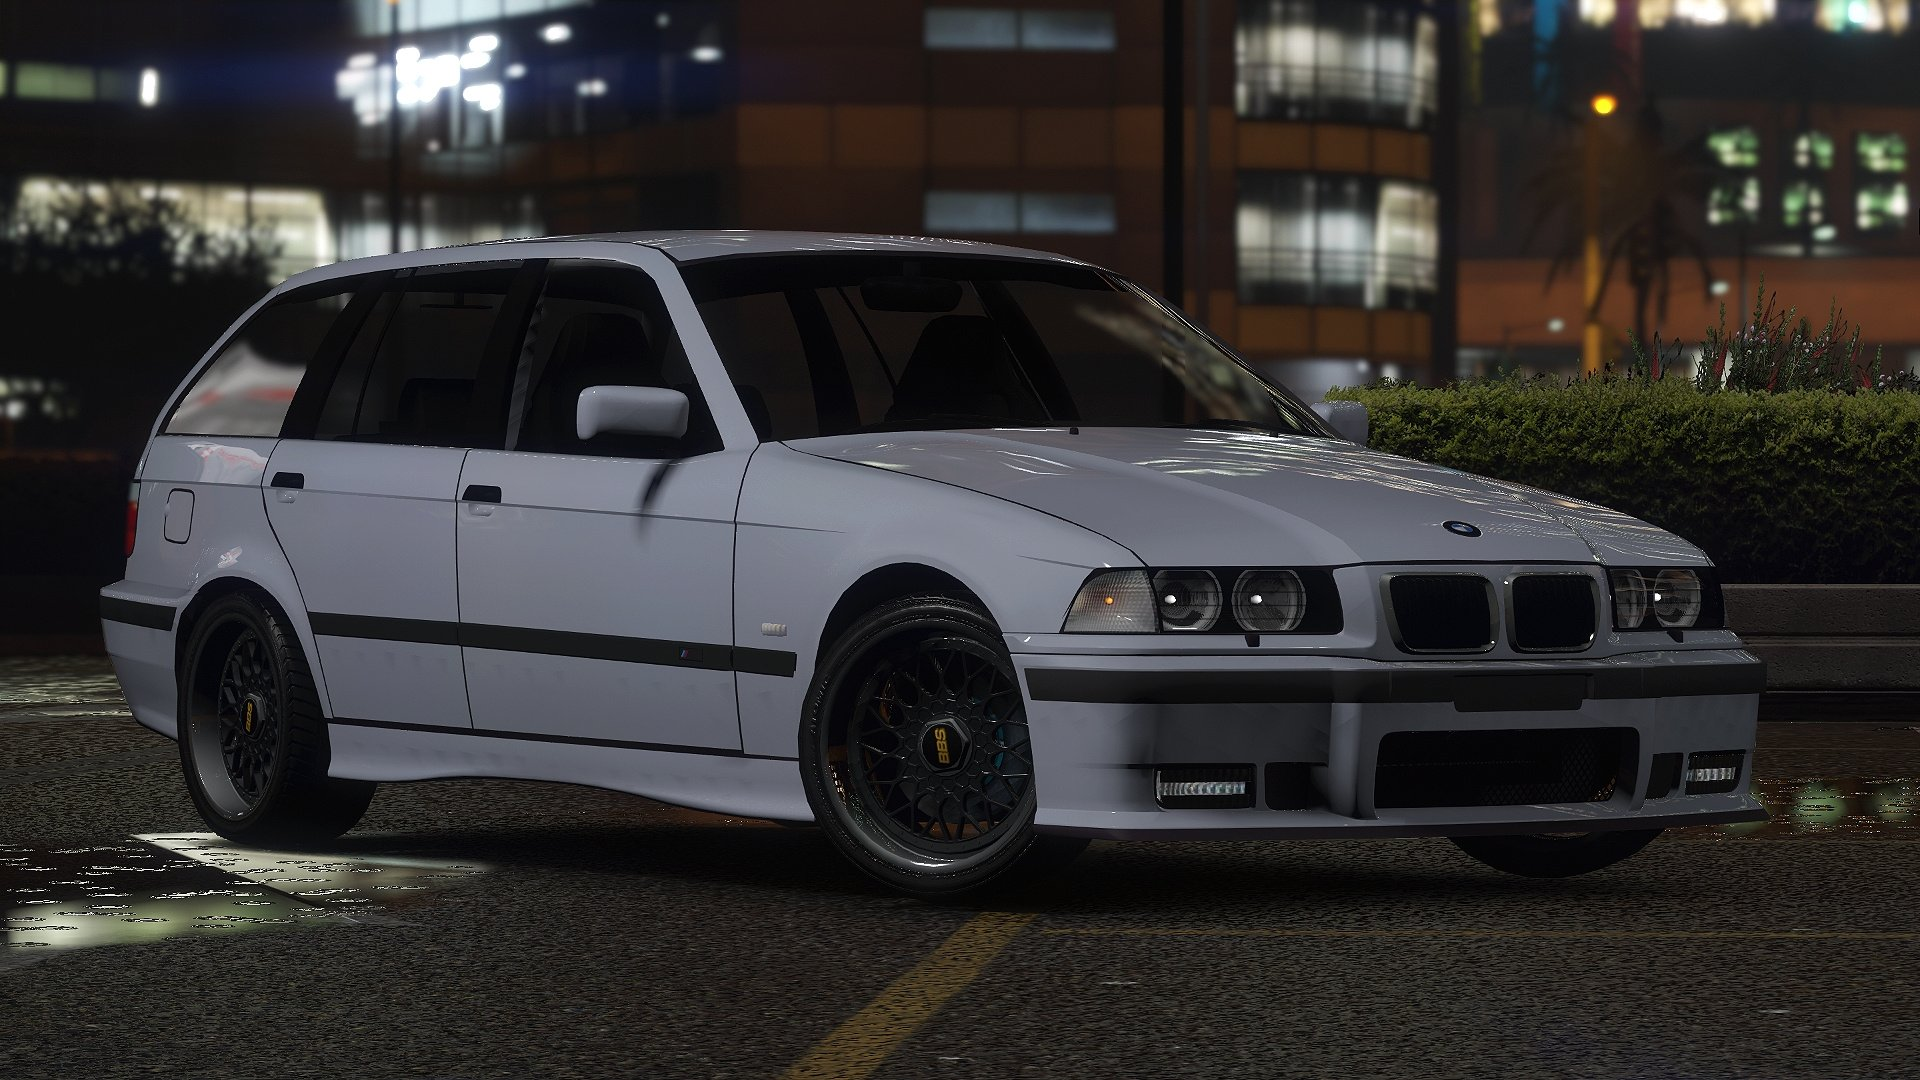 bmw e36 m3 wagon images galleries with a bite. Black Bedroom Furniture Sets. Home Design Ideas